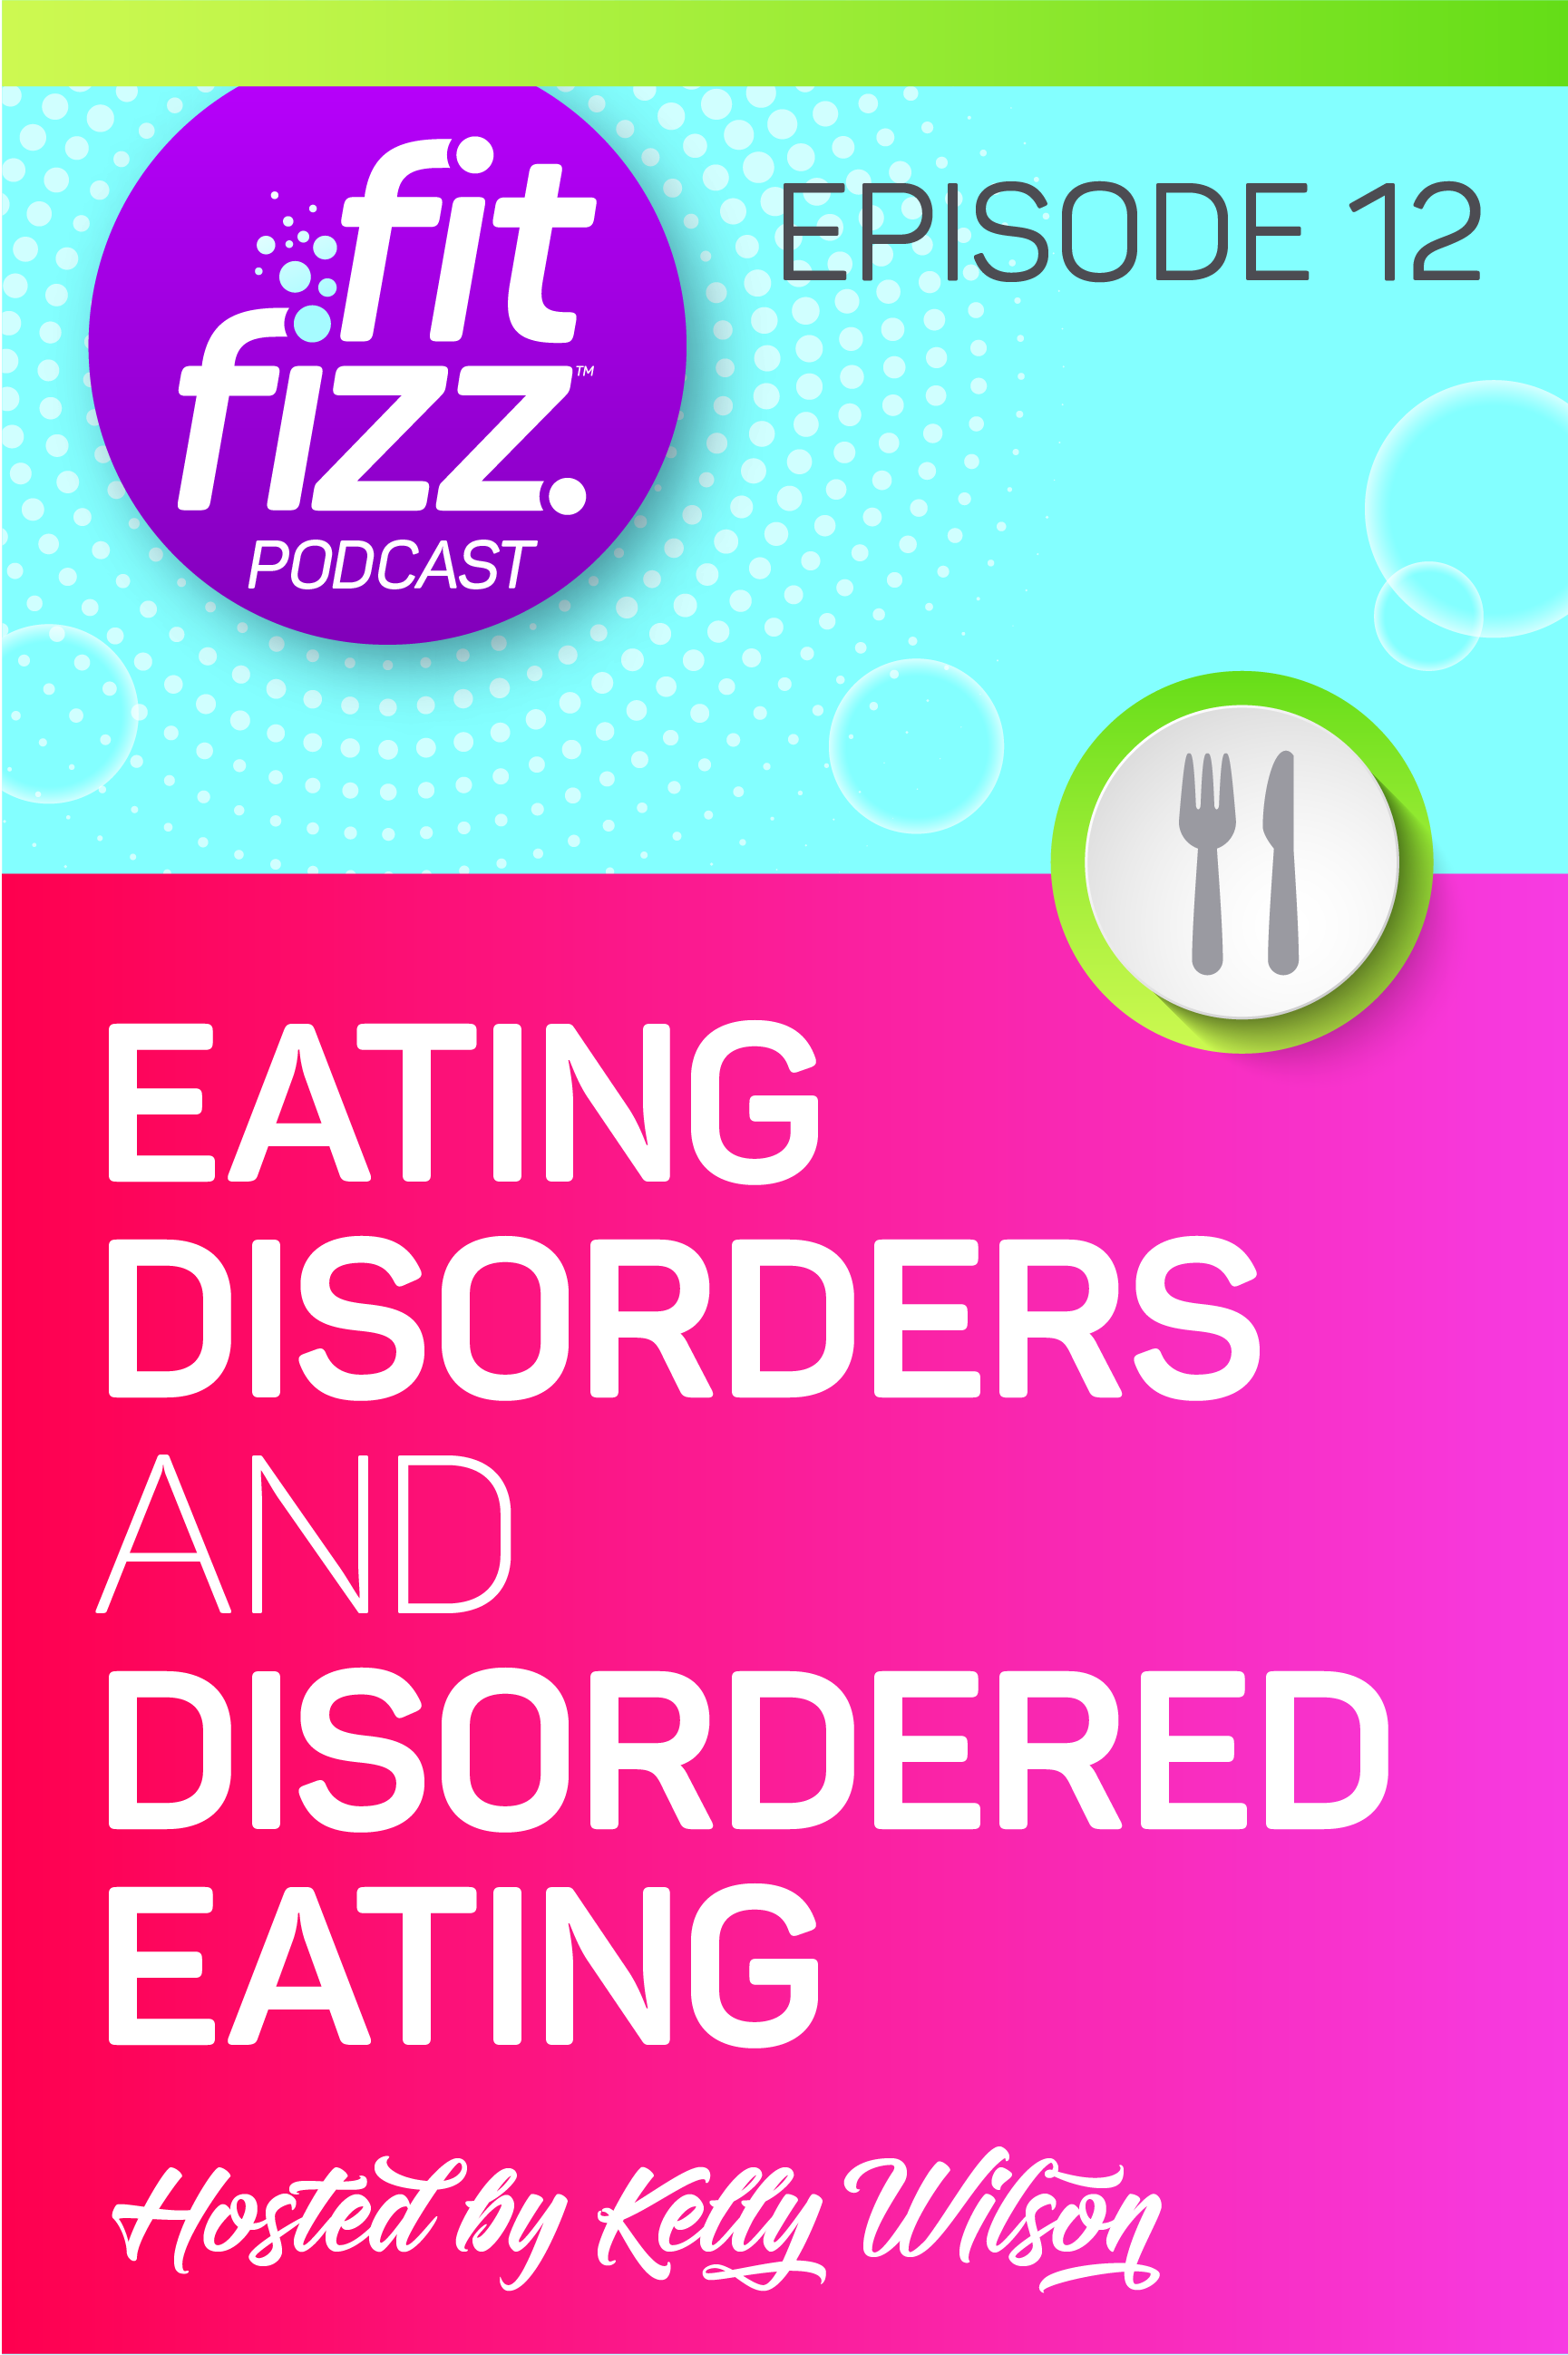 Podcast Episode 12: Eating Disorders and Disordered Eating